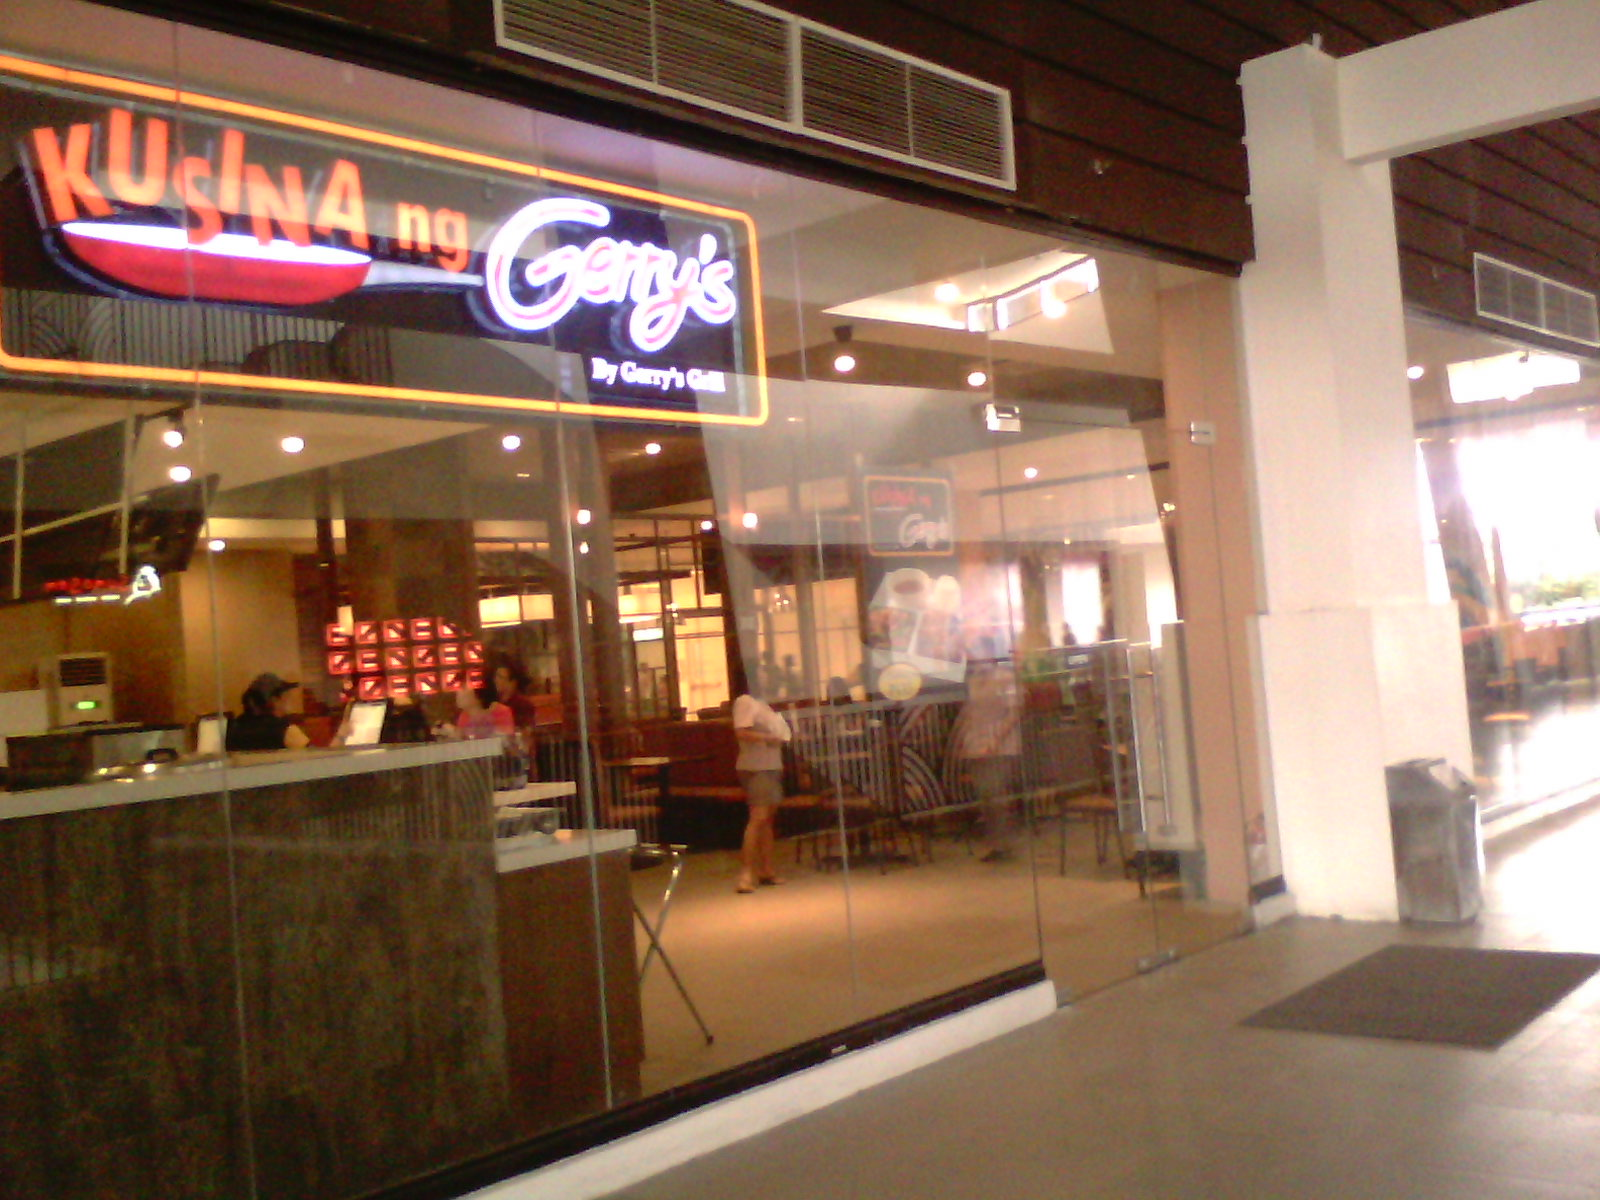 kusina ng gerrys harbor point subic - Gerrys Italian Kitchen